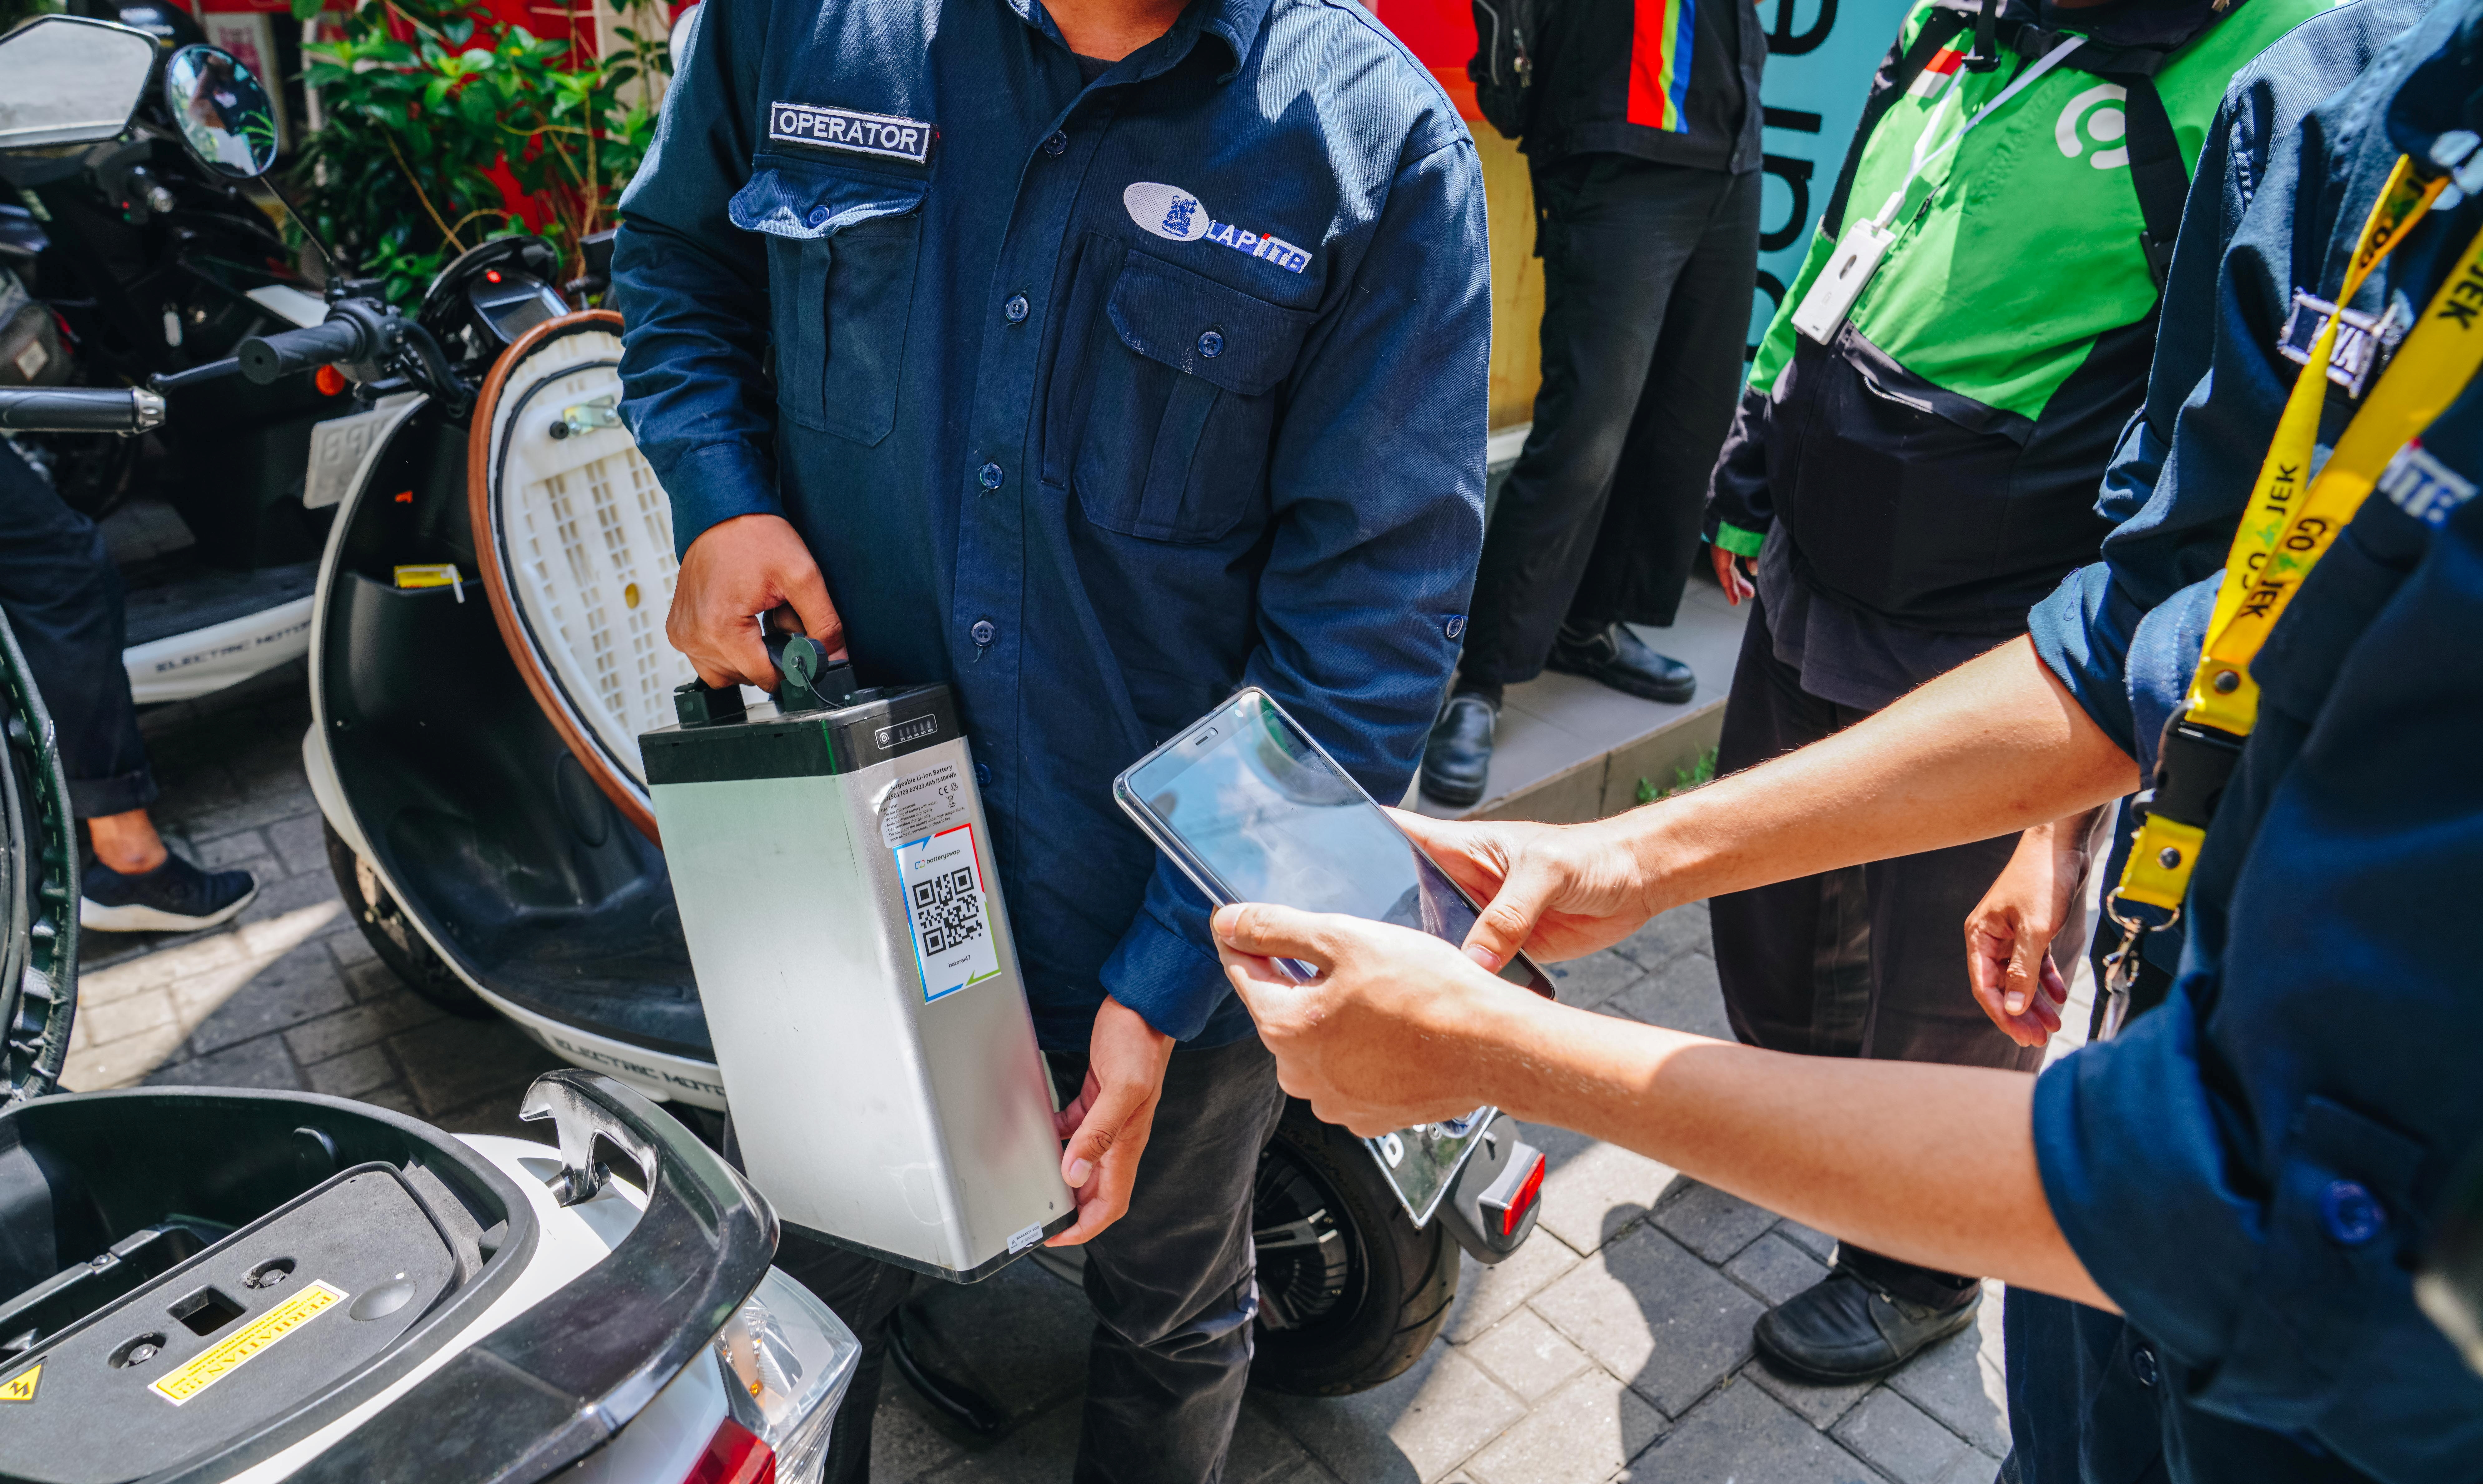 Operators scan a Gojek taxi rider's battery barcode to charge it at a charging station in Jakarta, Indonesia August 28, 2020. Picture taken August 28, 2020. Courtesy of GOJEK/Handout via REUTERS